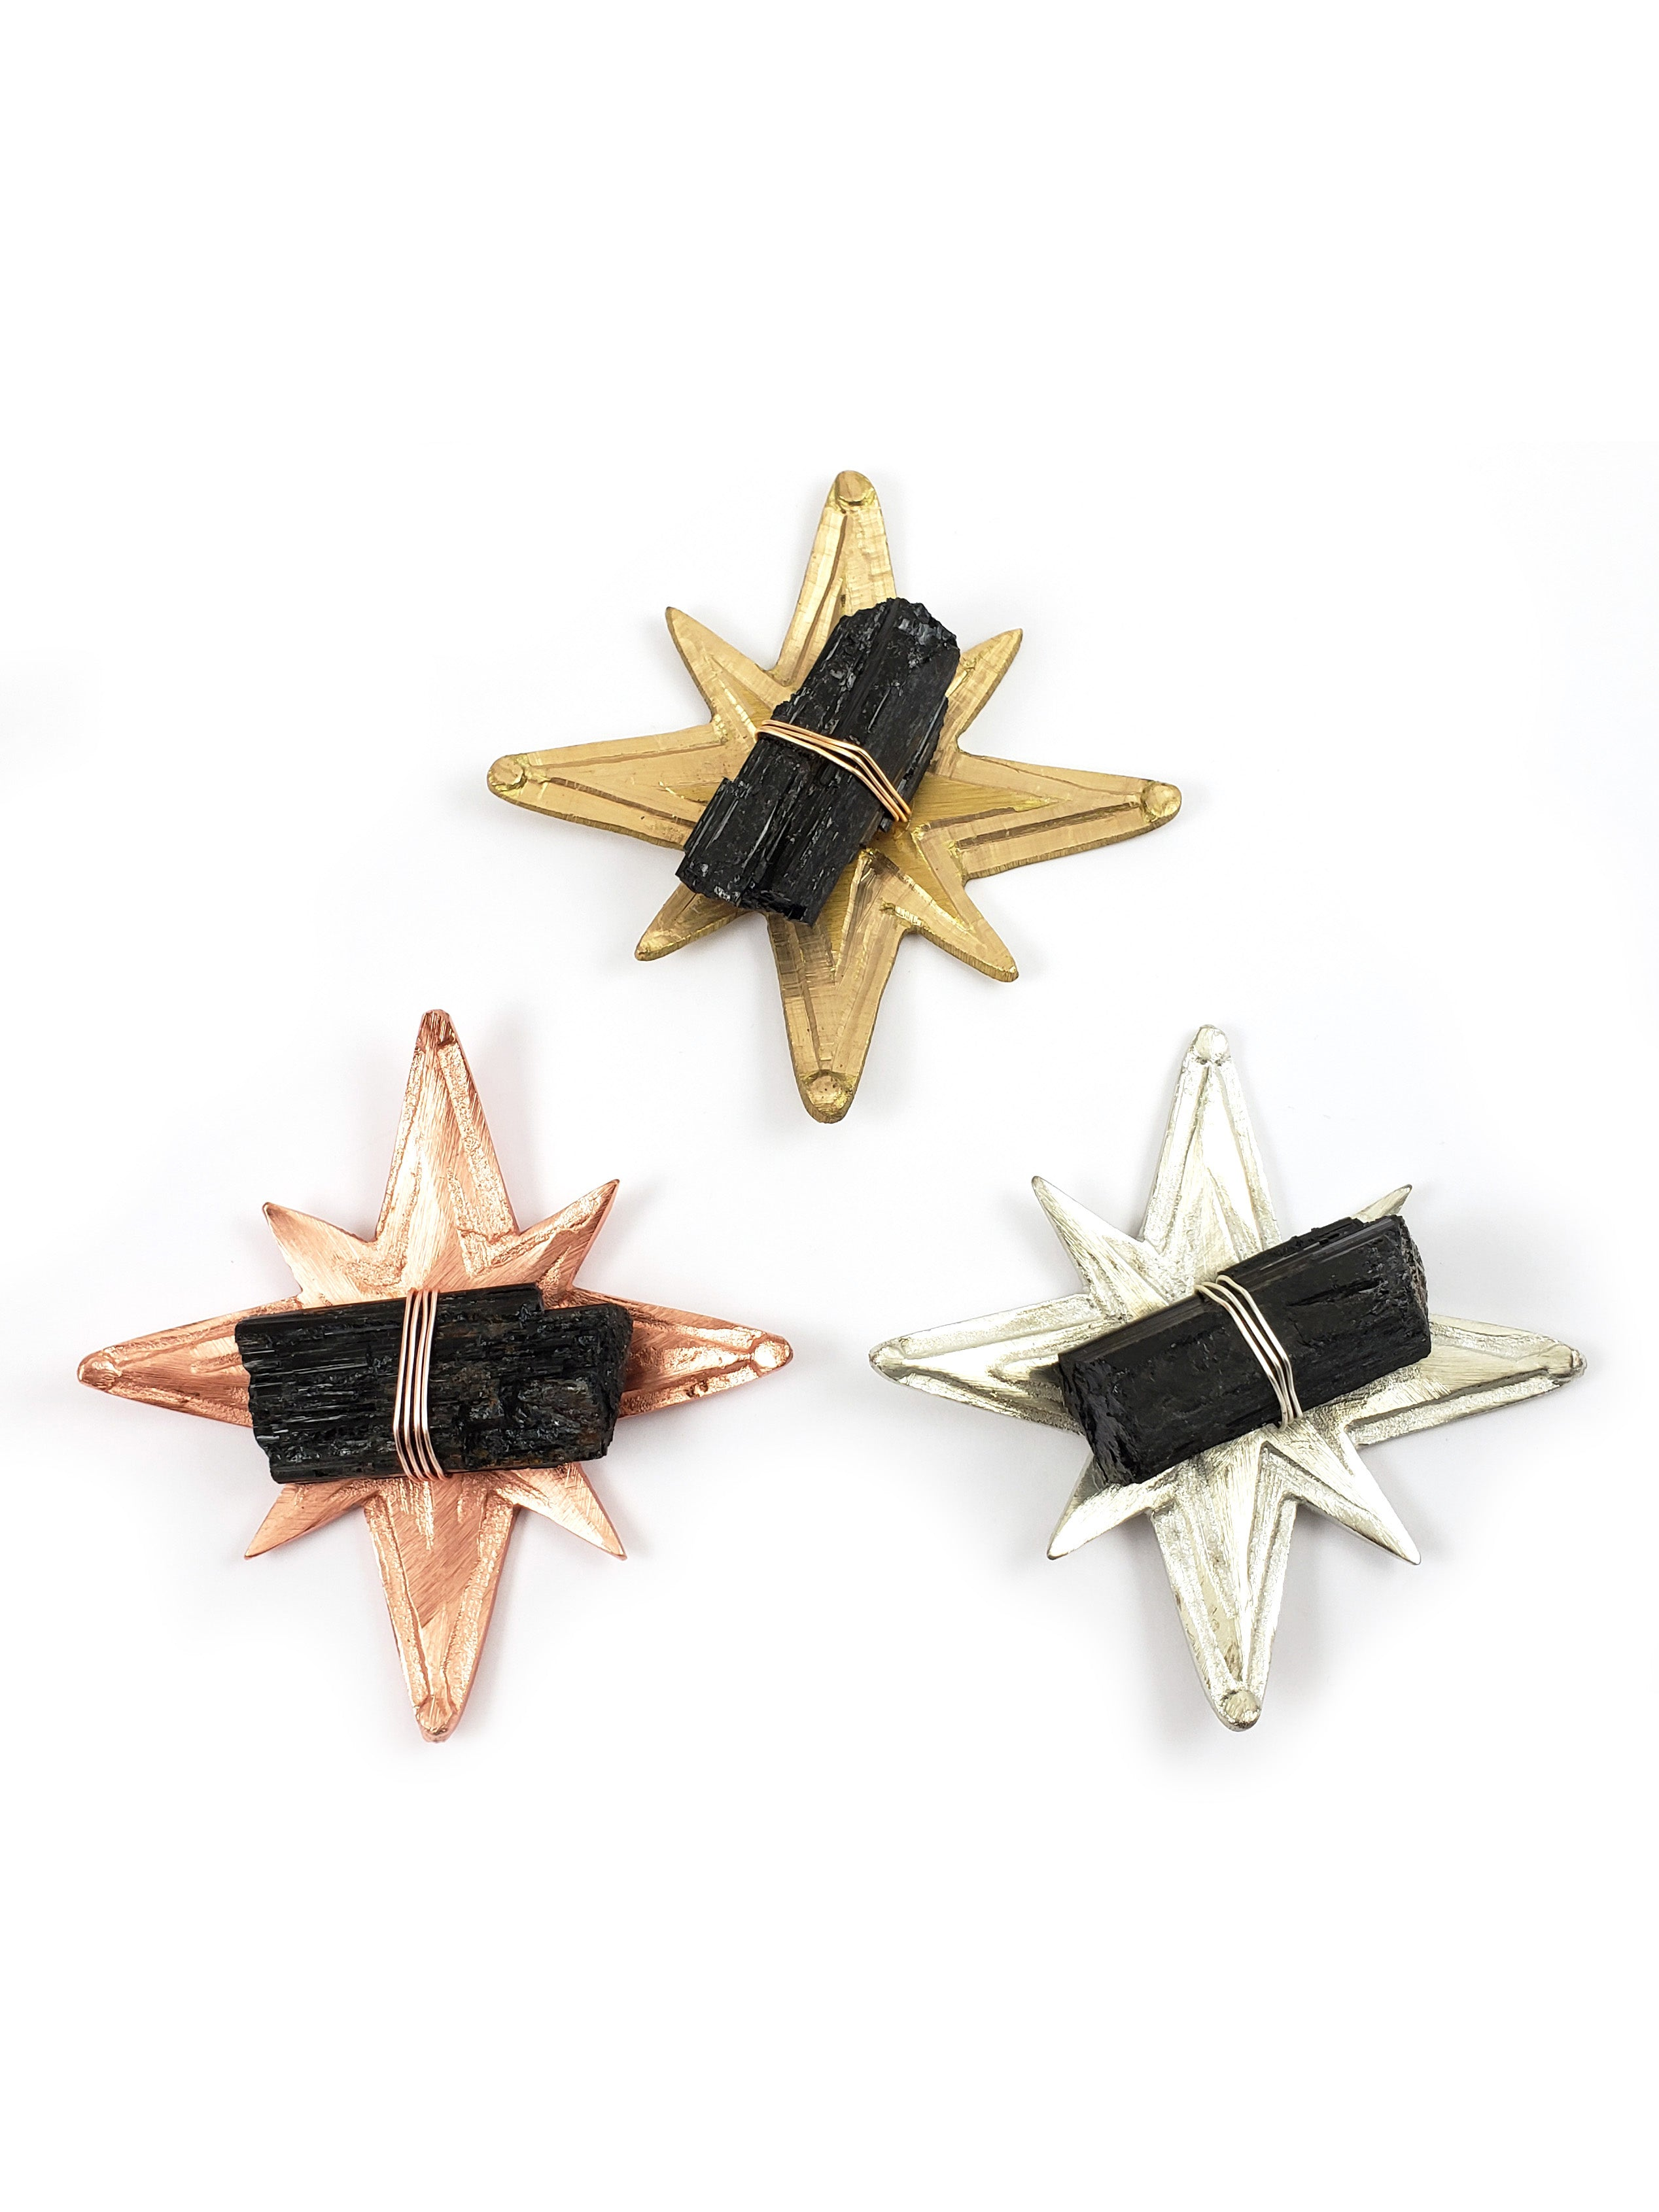 Black Tourmaline Star Dish